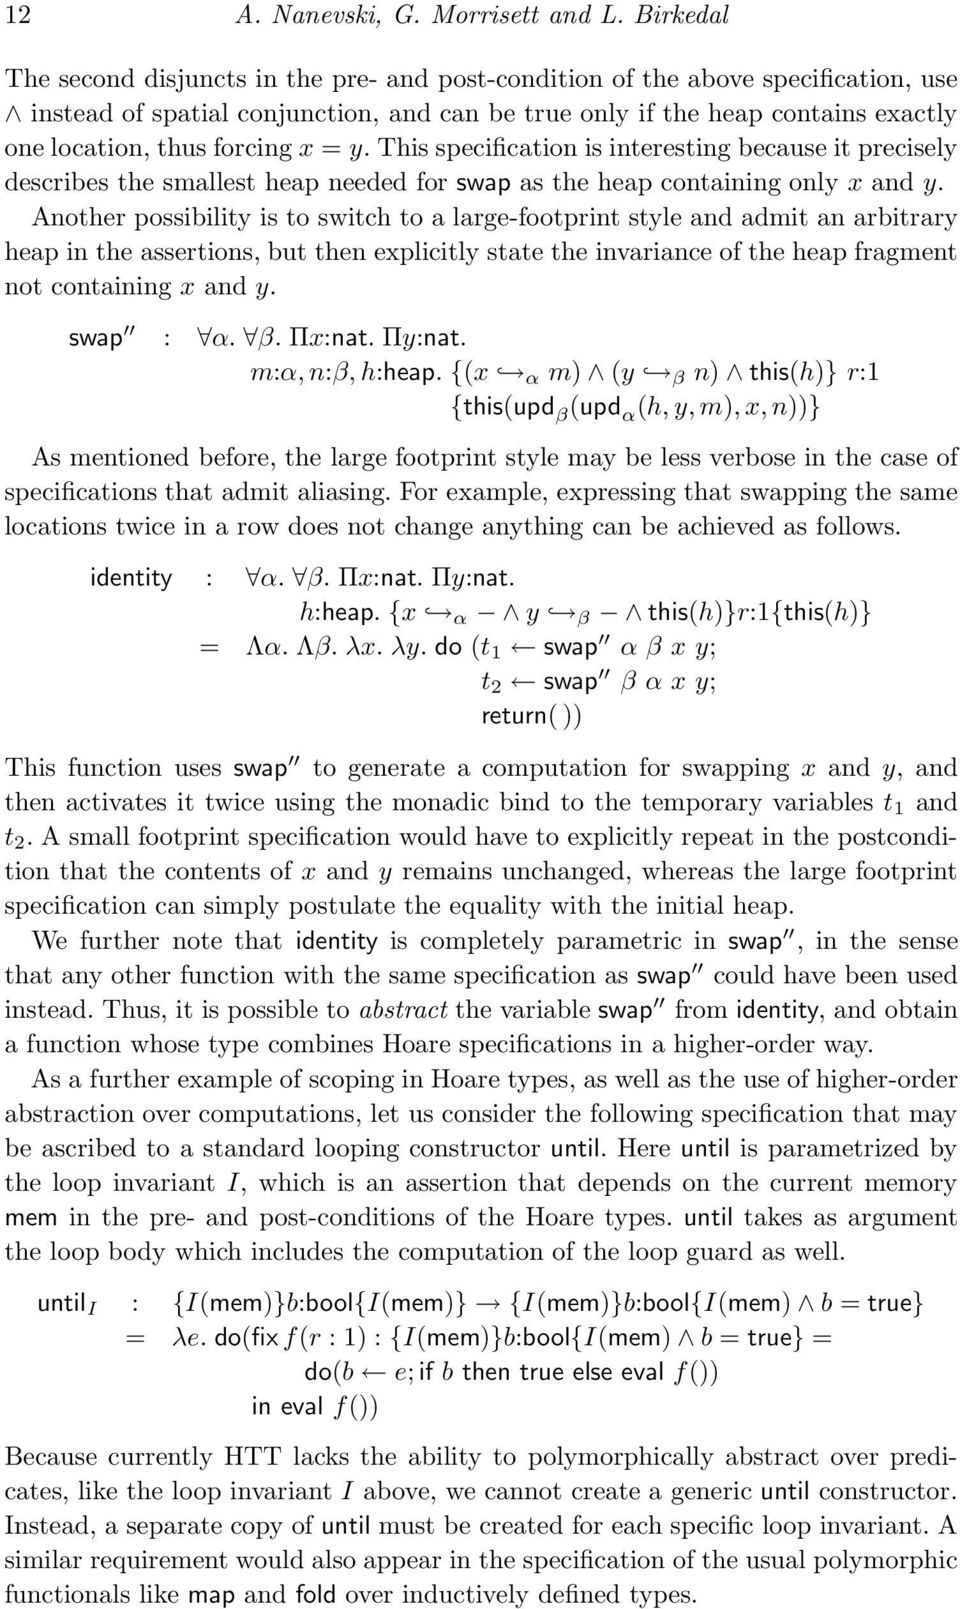 forcing x = y. This specification is interesting because it precisely describes the smallest heap needed for swap as the heap containing only x and y.